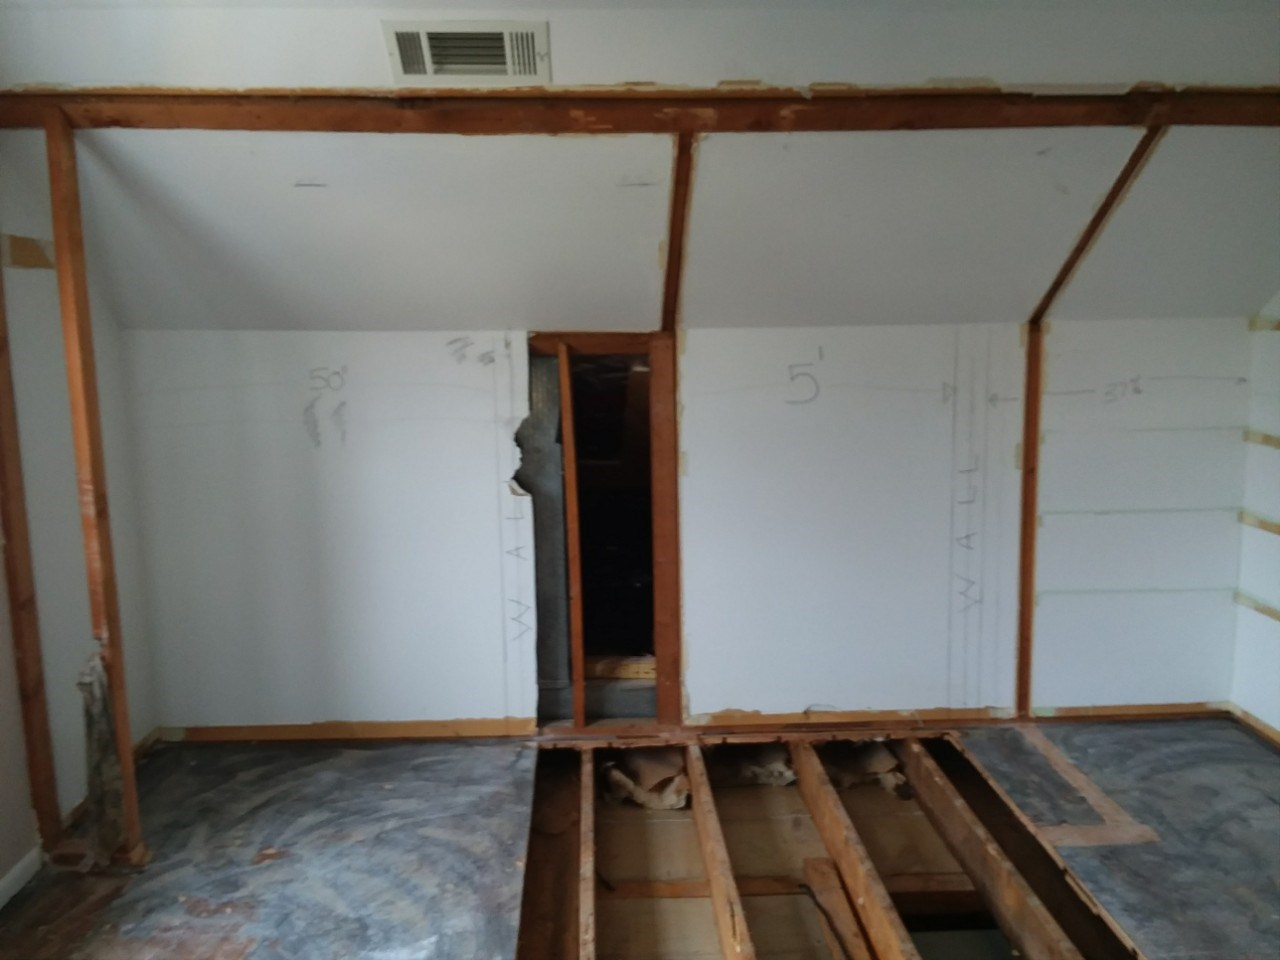 Before the bathroom build